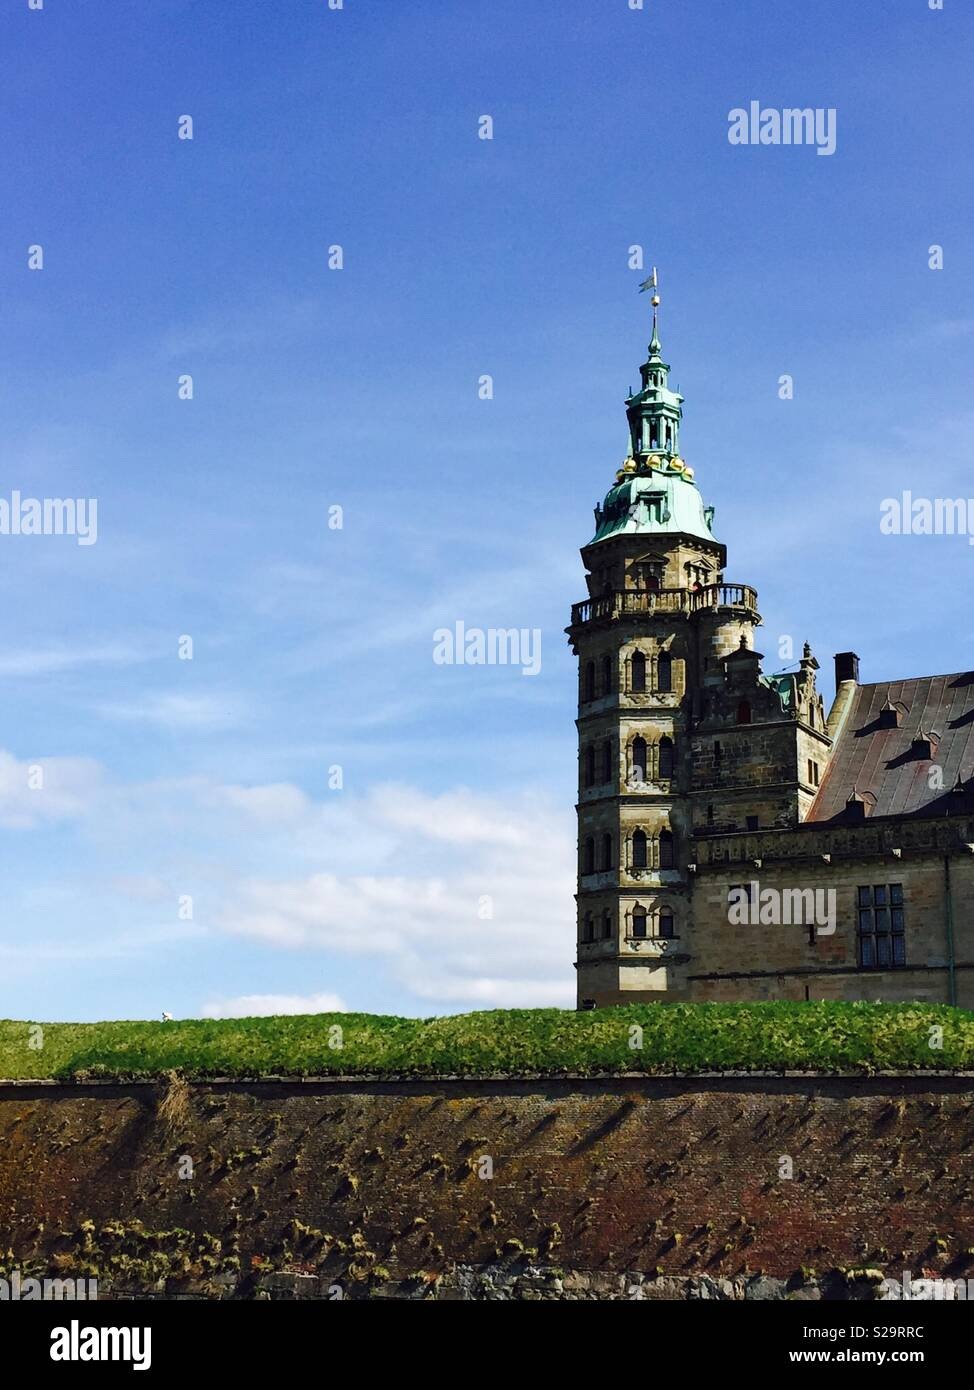 A view of Kronborg Castle in Denmark - Stock Image